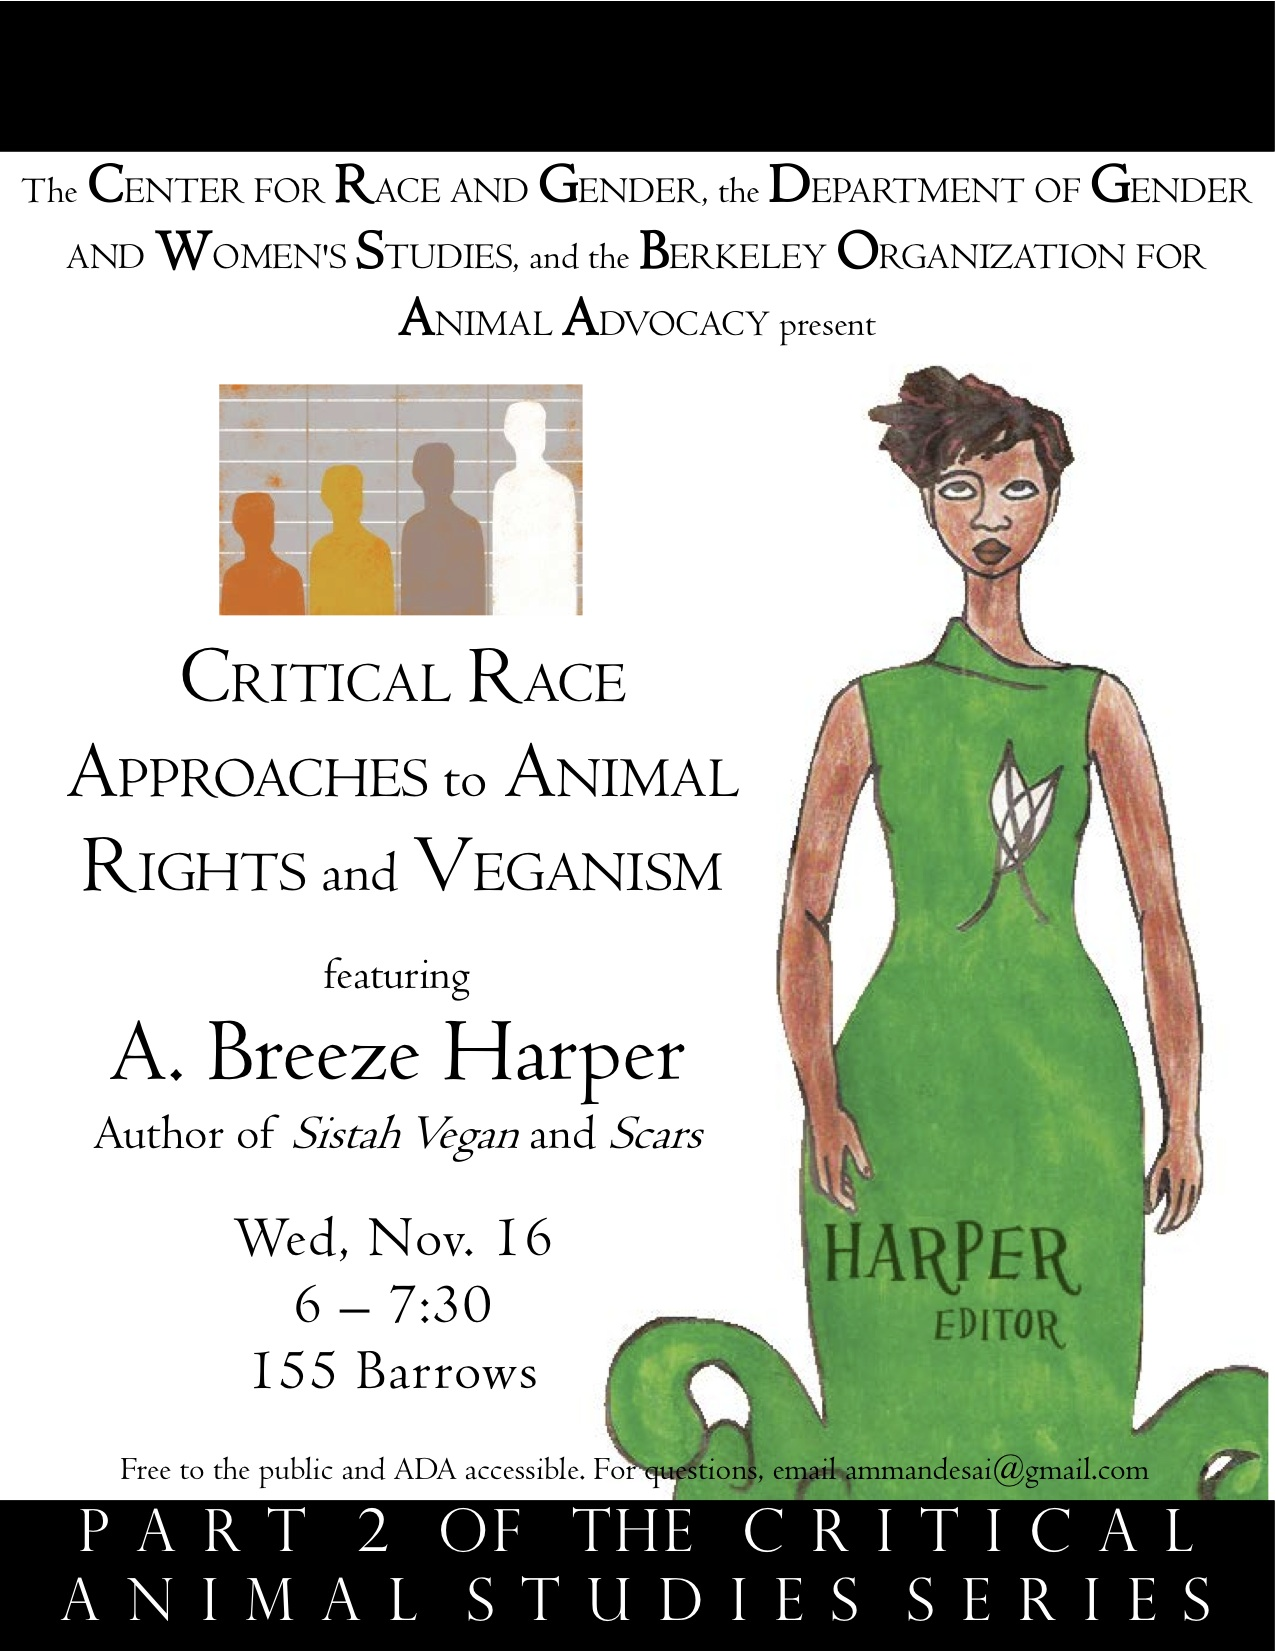 Breeze Harper to speak at UC Berkeley, November 16, 2011 for Critical Animal Studies Series